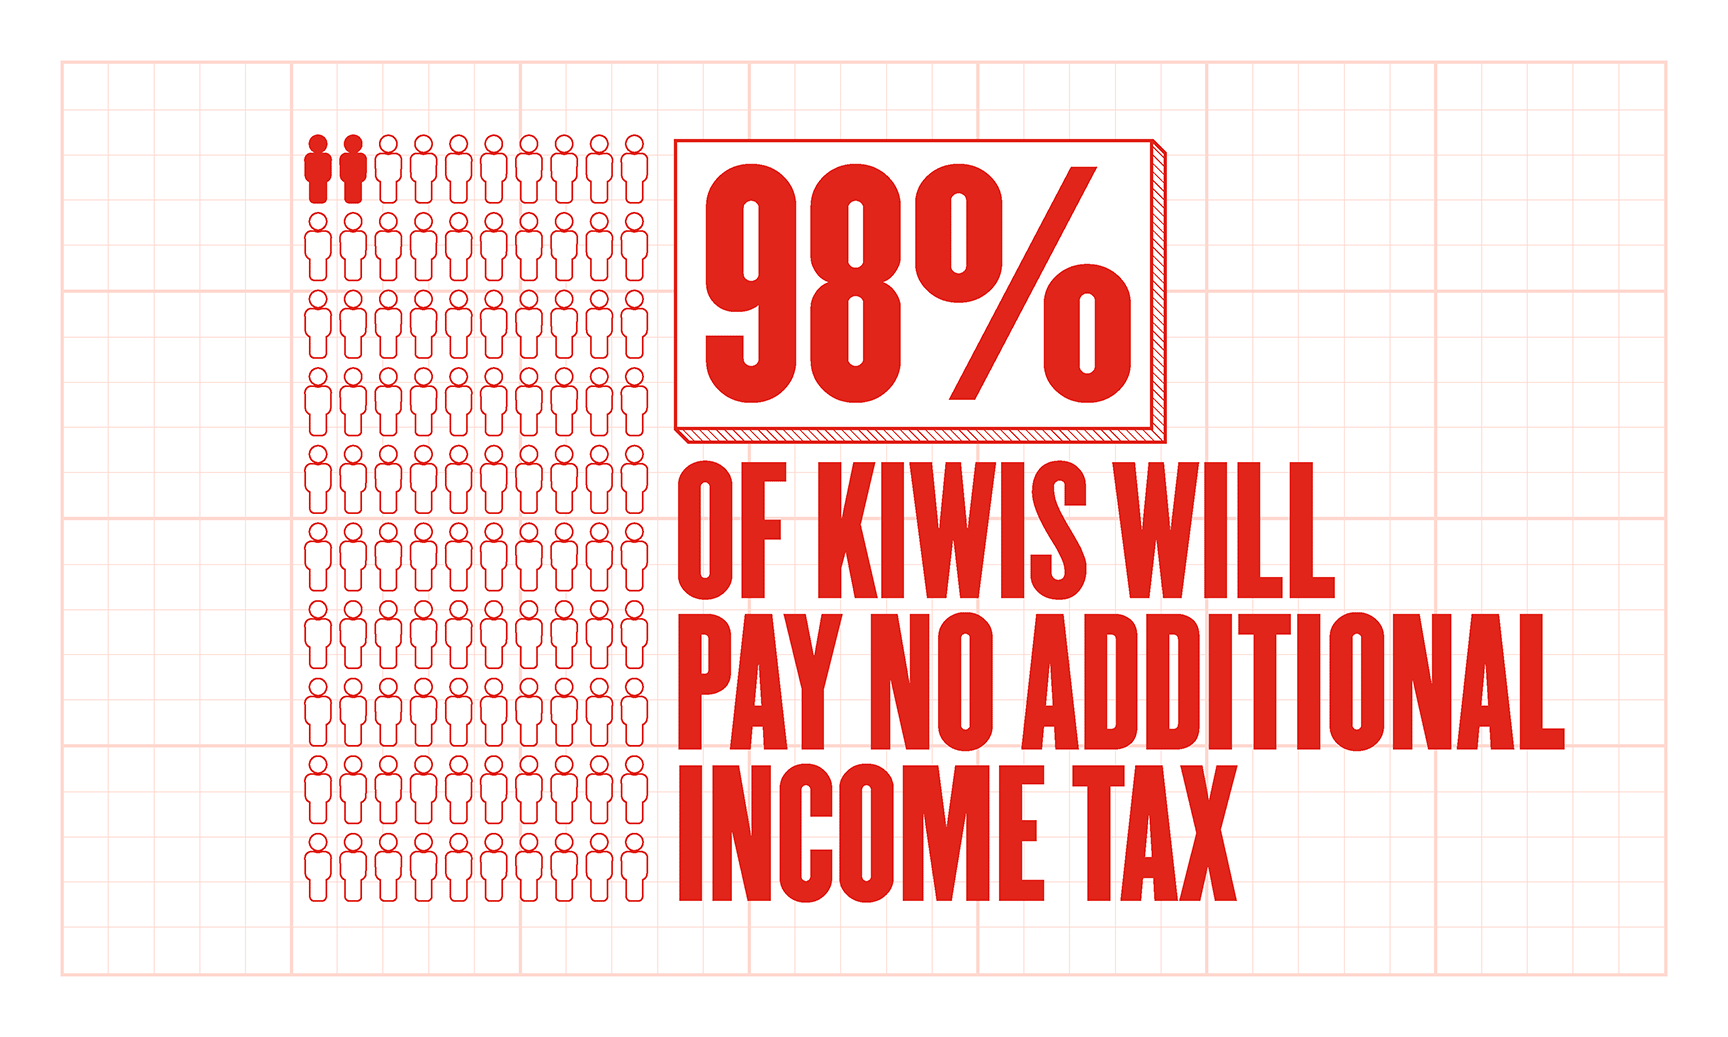 98% of Kiwis will pay no additional income tax